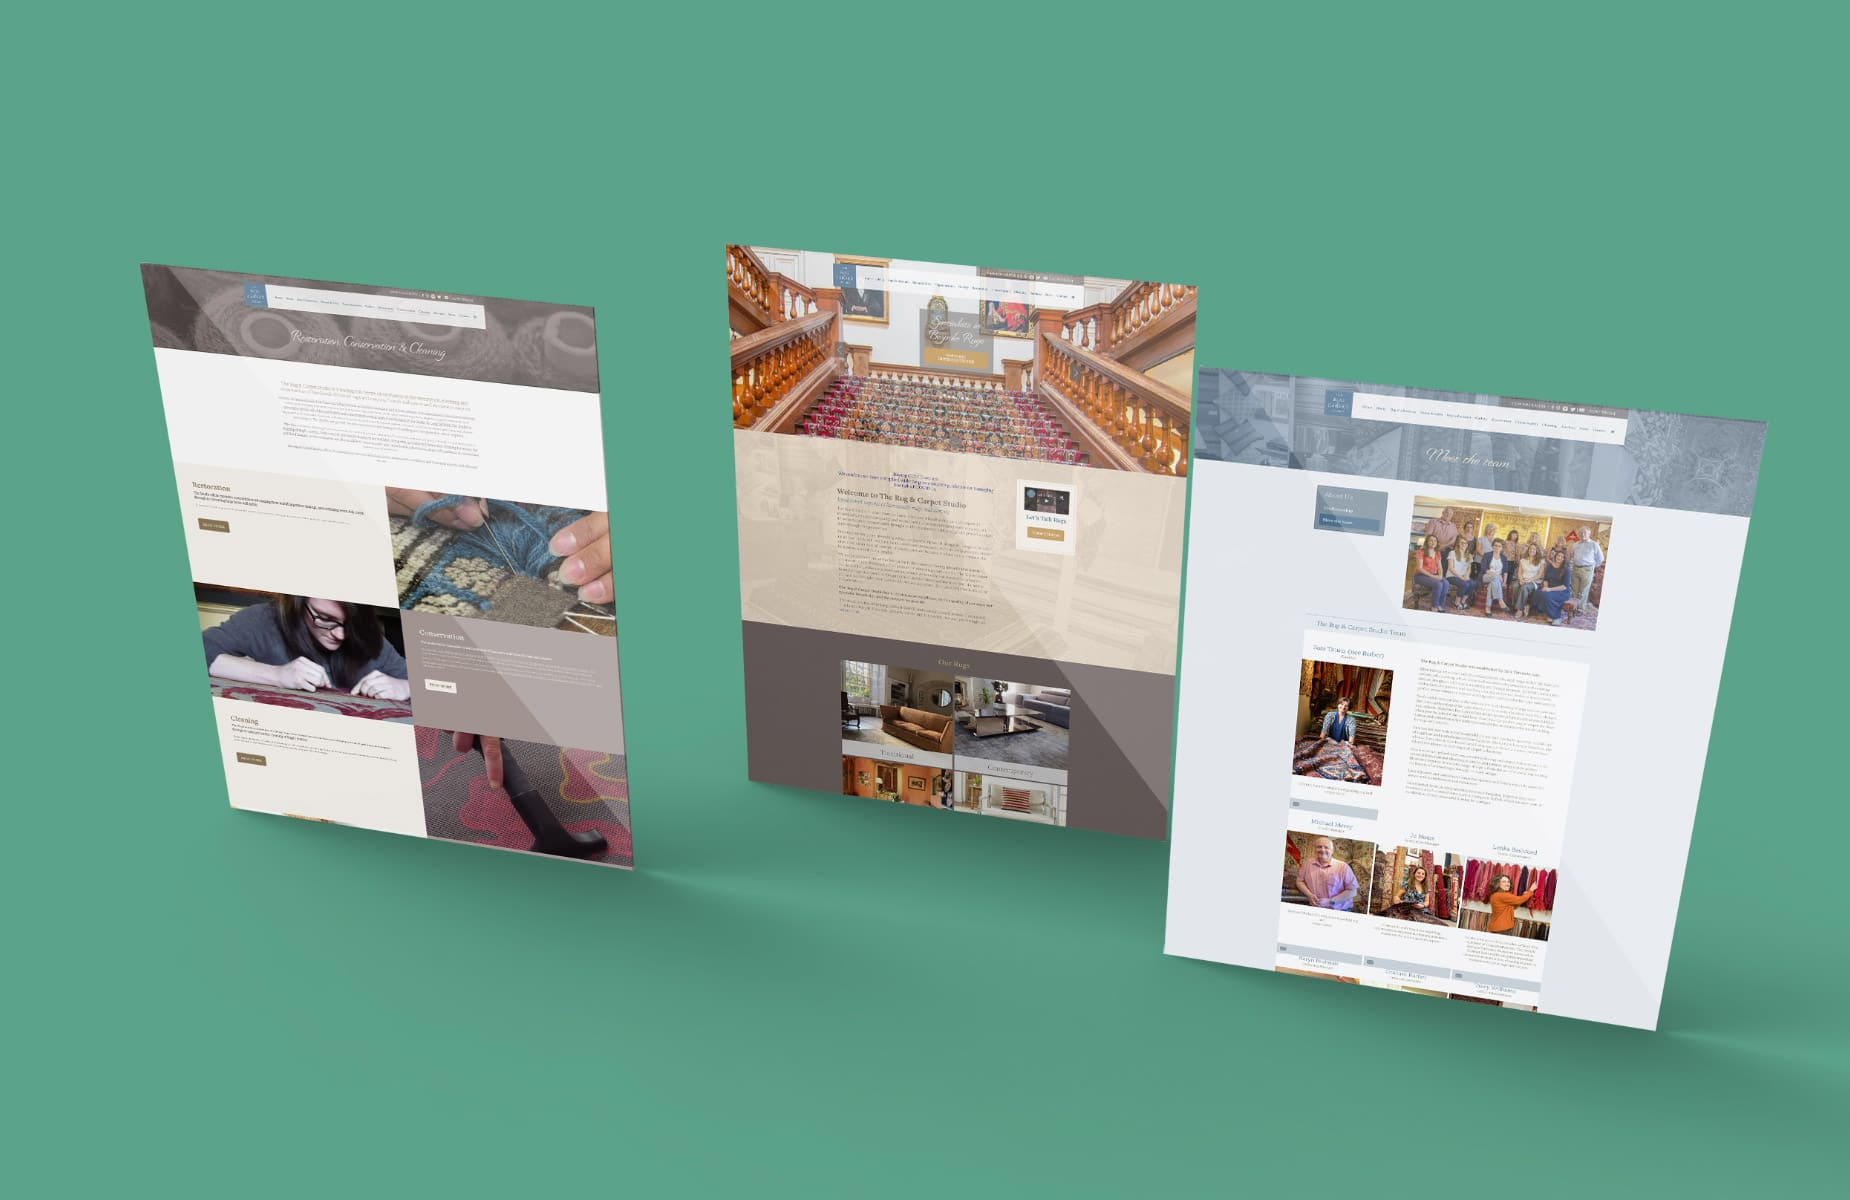 WP Creative, Design and Marketing Agency Suffolk, Ecommerce Services, Client Online Shop Examples